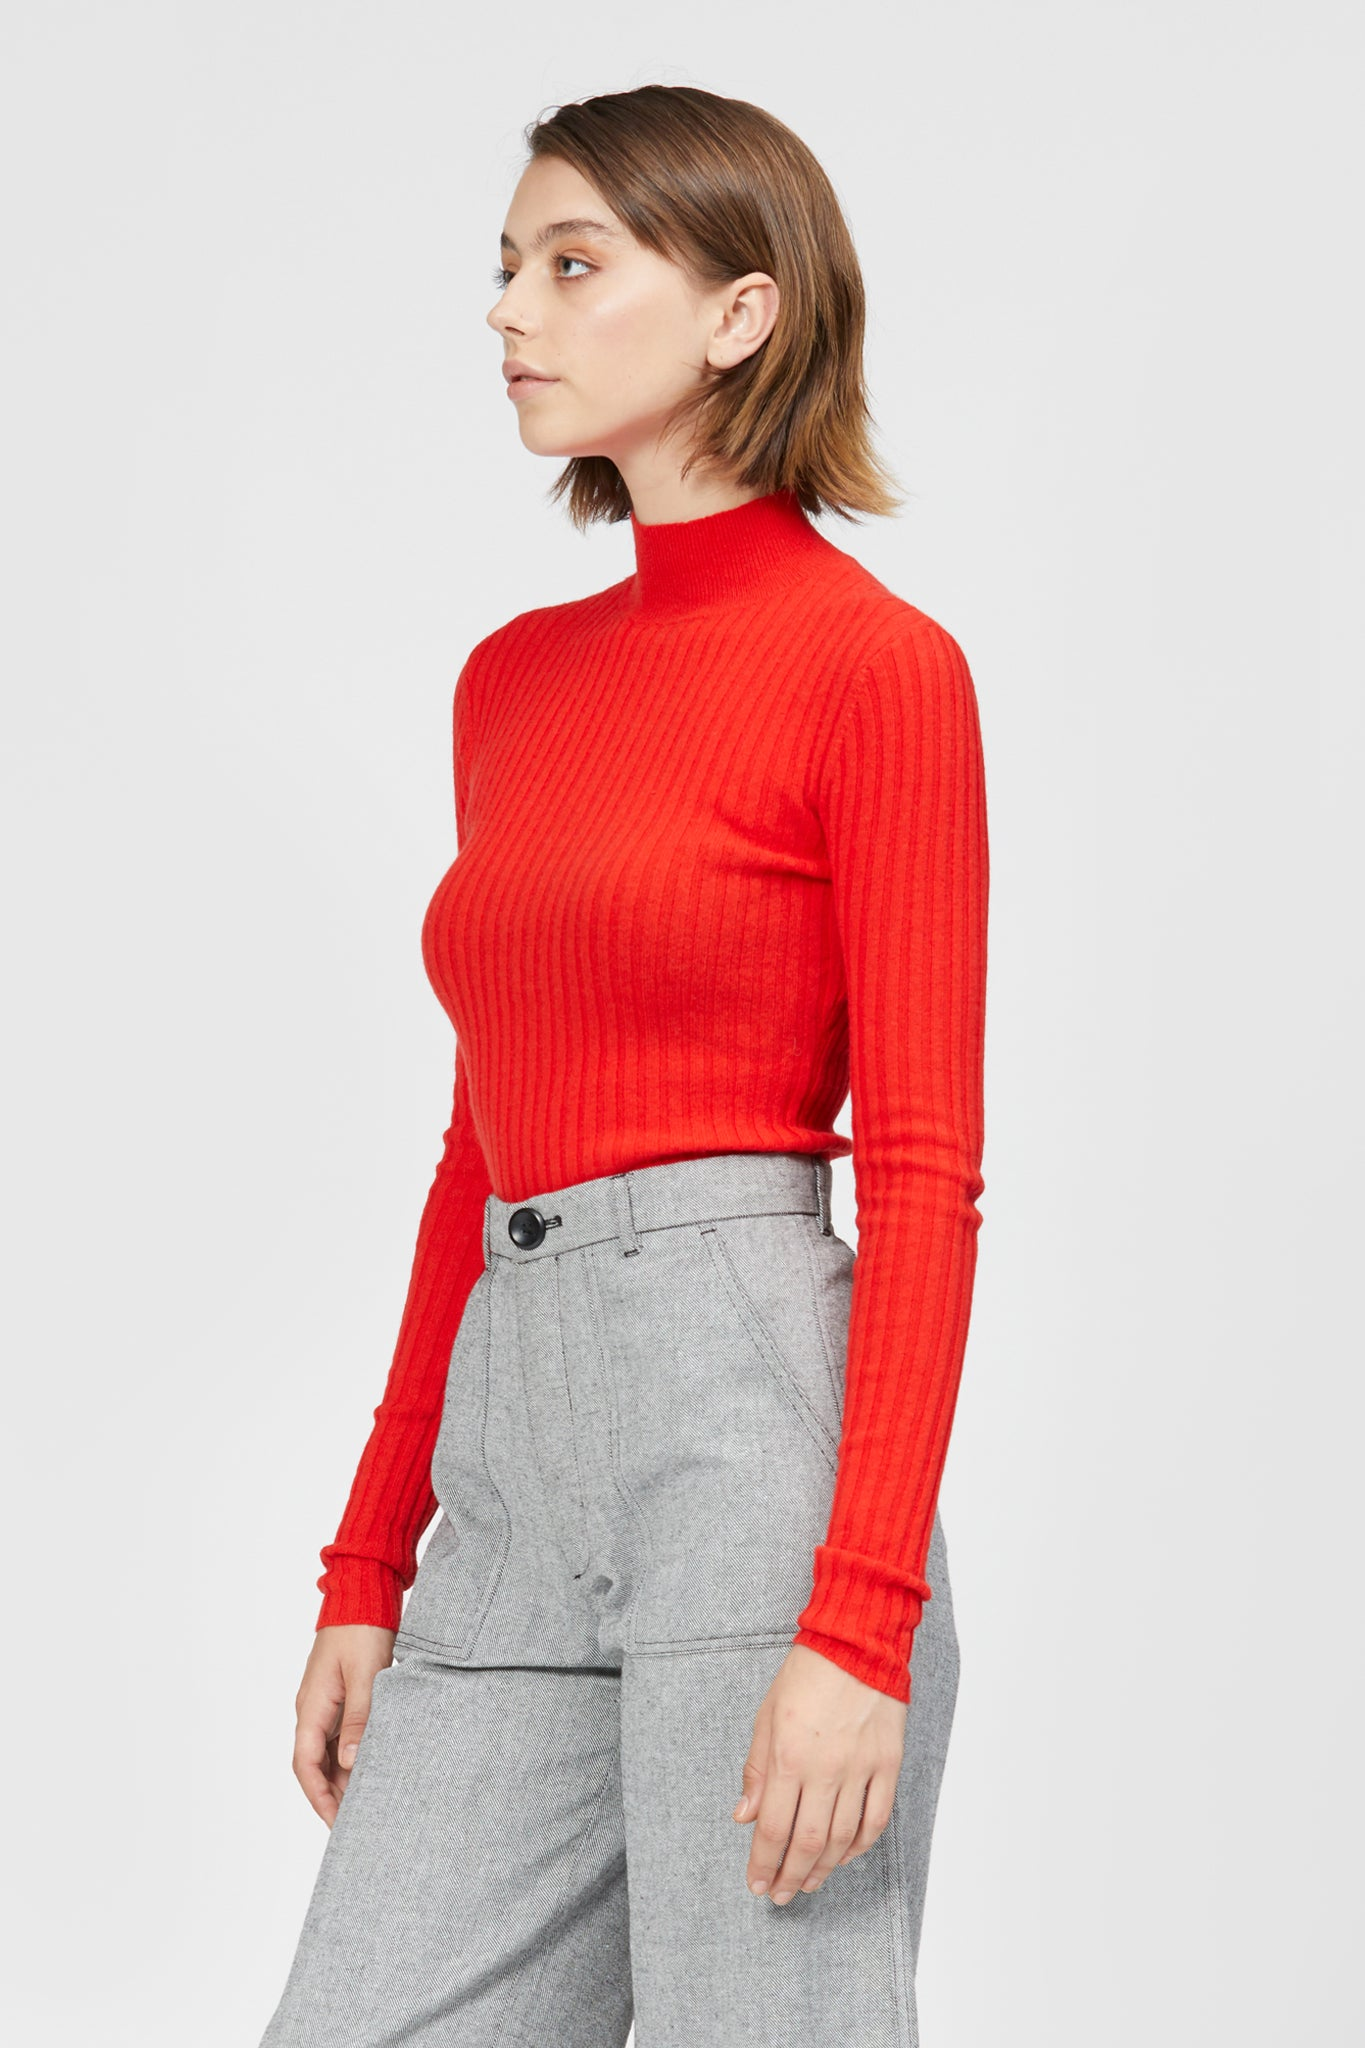 parco skivvy red